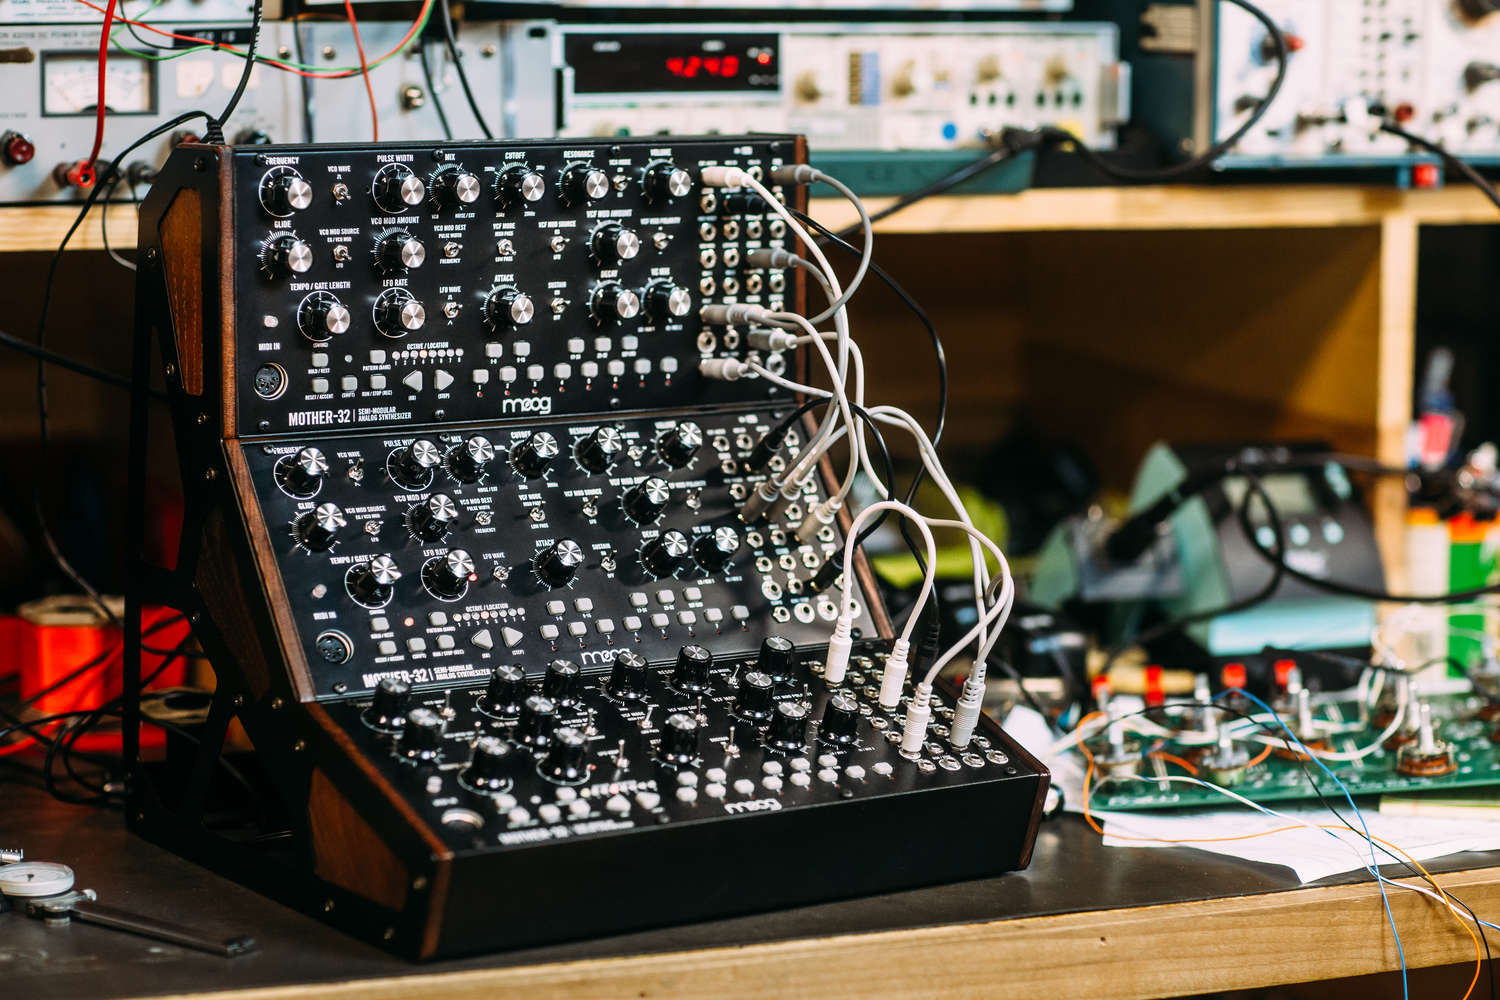 Moog mother 32 v2